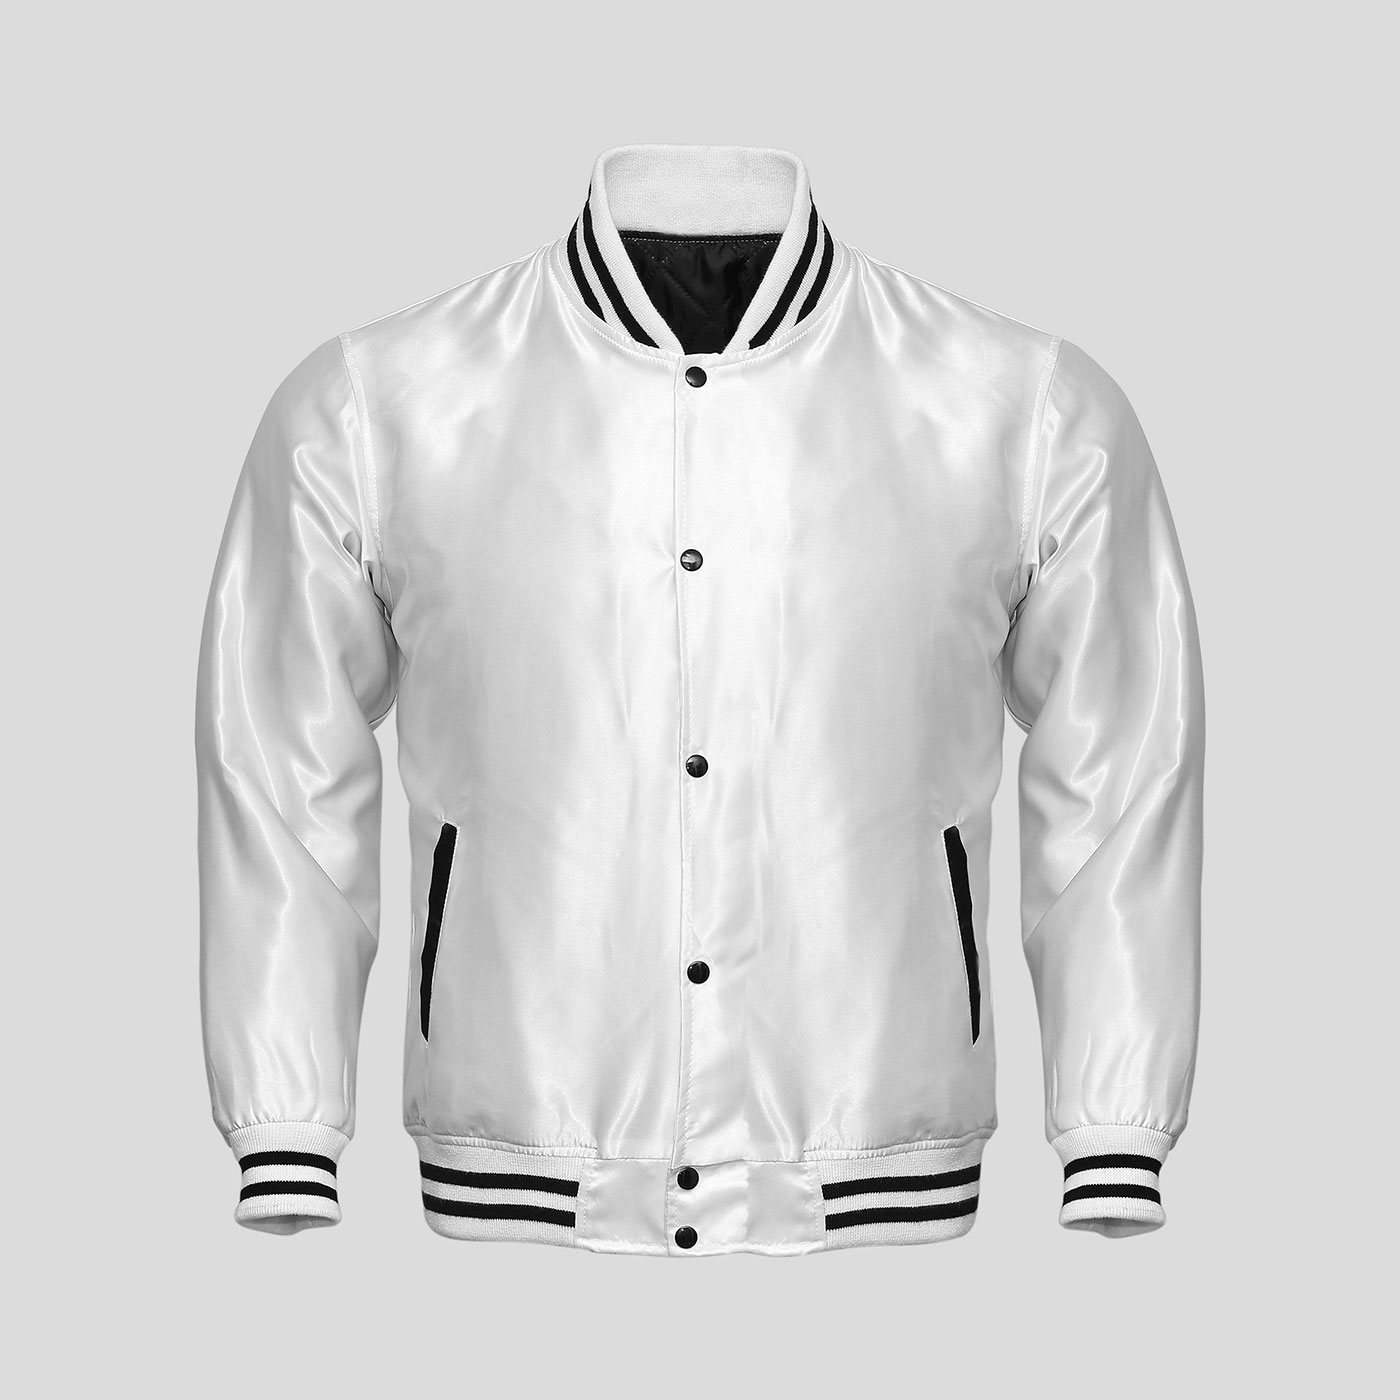 White Satin Baseball Jacket | Clothoo